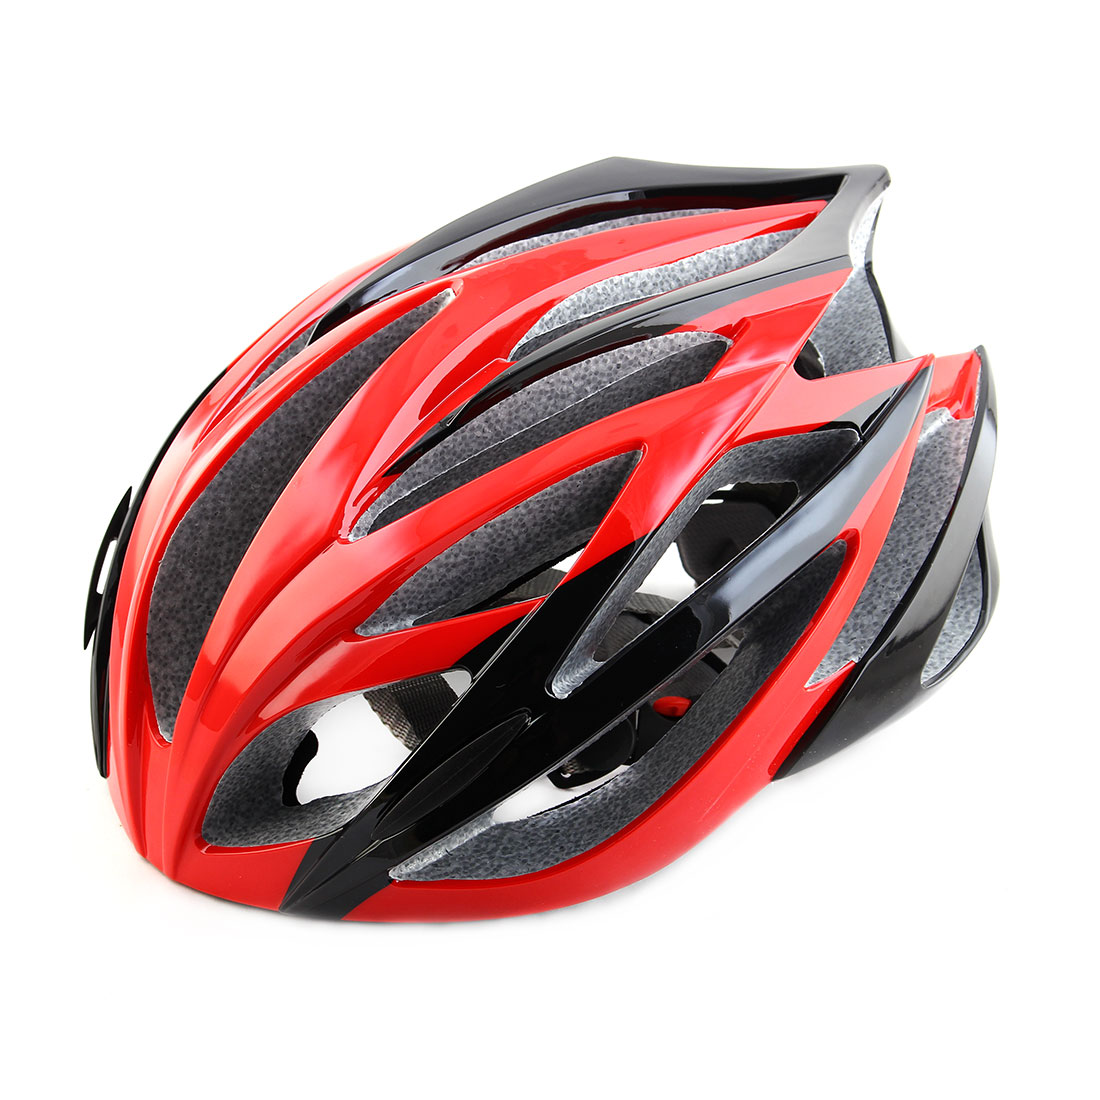 Adult Unisex Head Protector Cycling Cap Bicycle Hat Adjustable Safety Bike Helmet Red